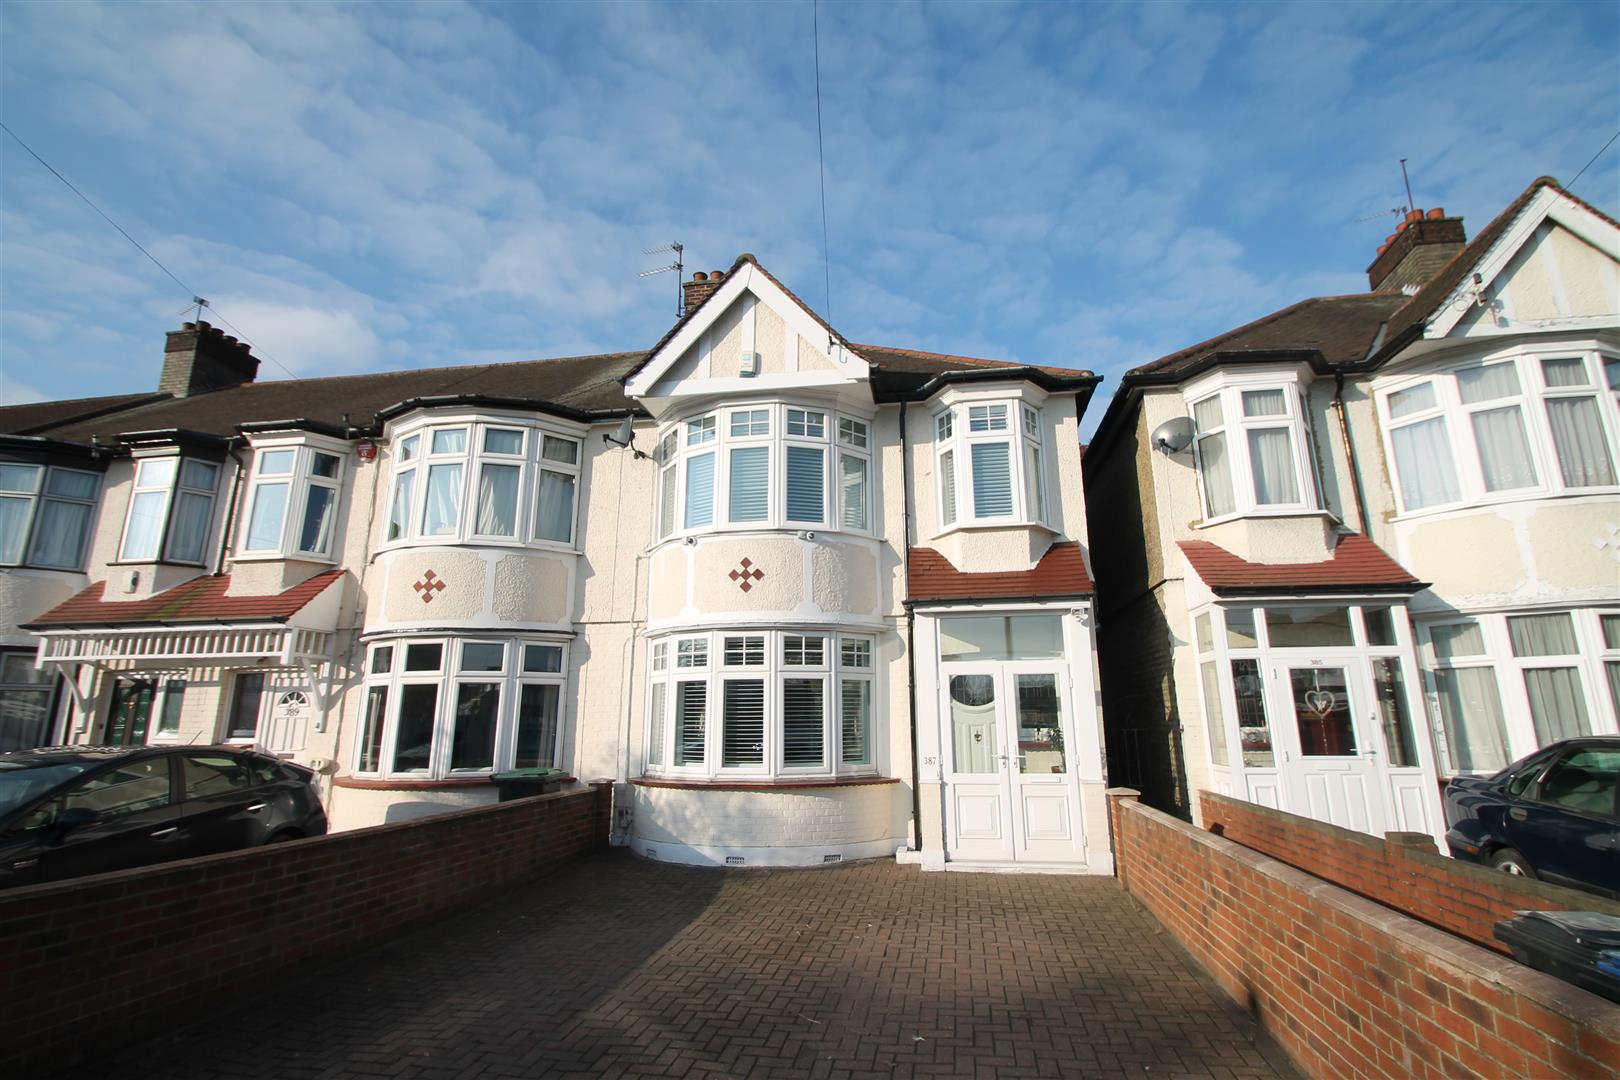 3 Bedrooms House for sale in Firs Lane, Palmers Green, London N13